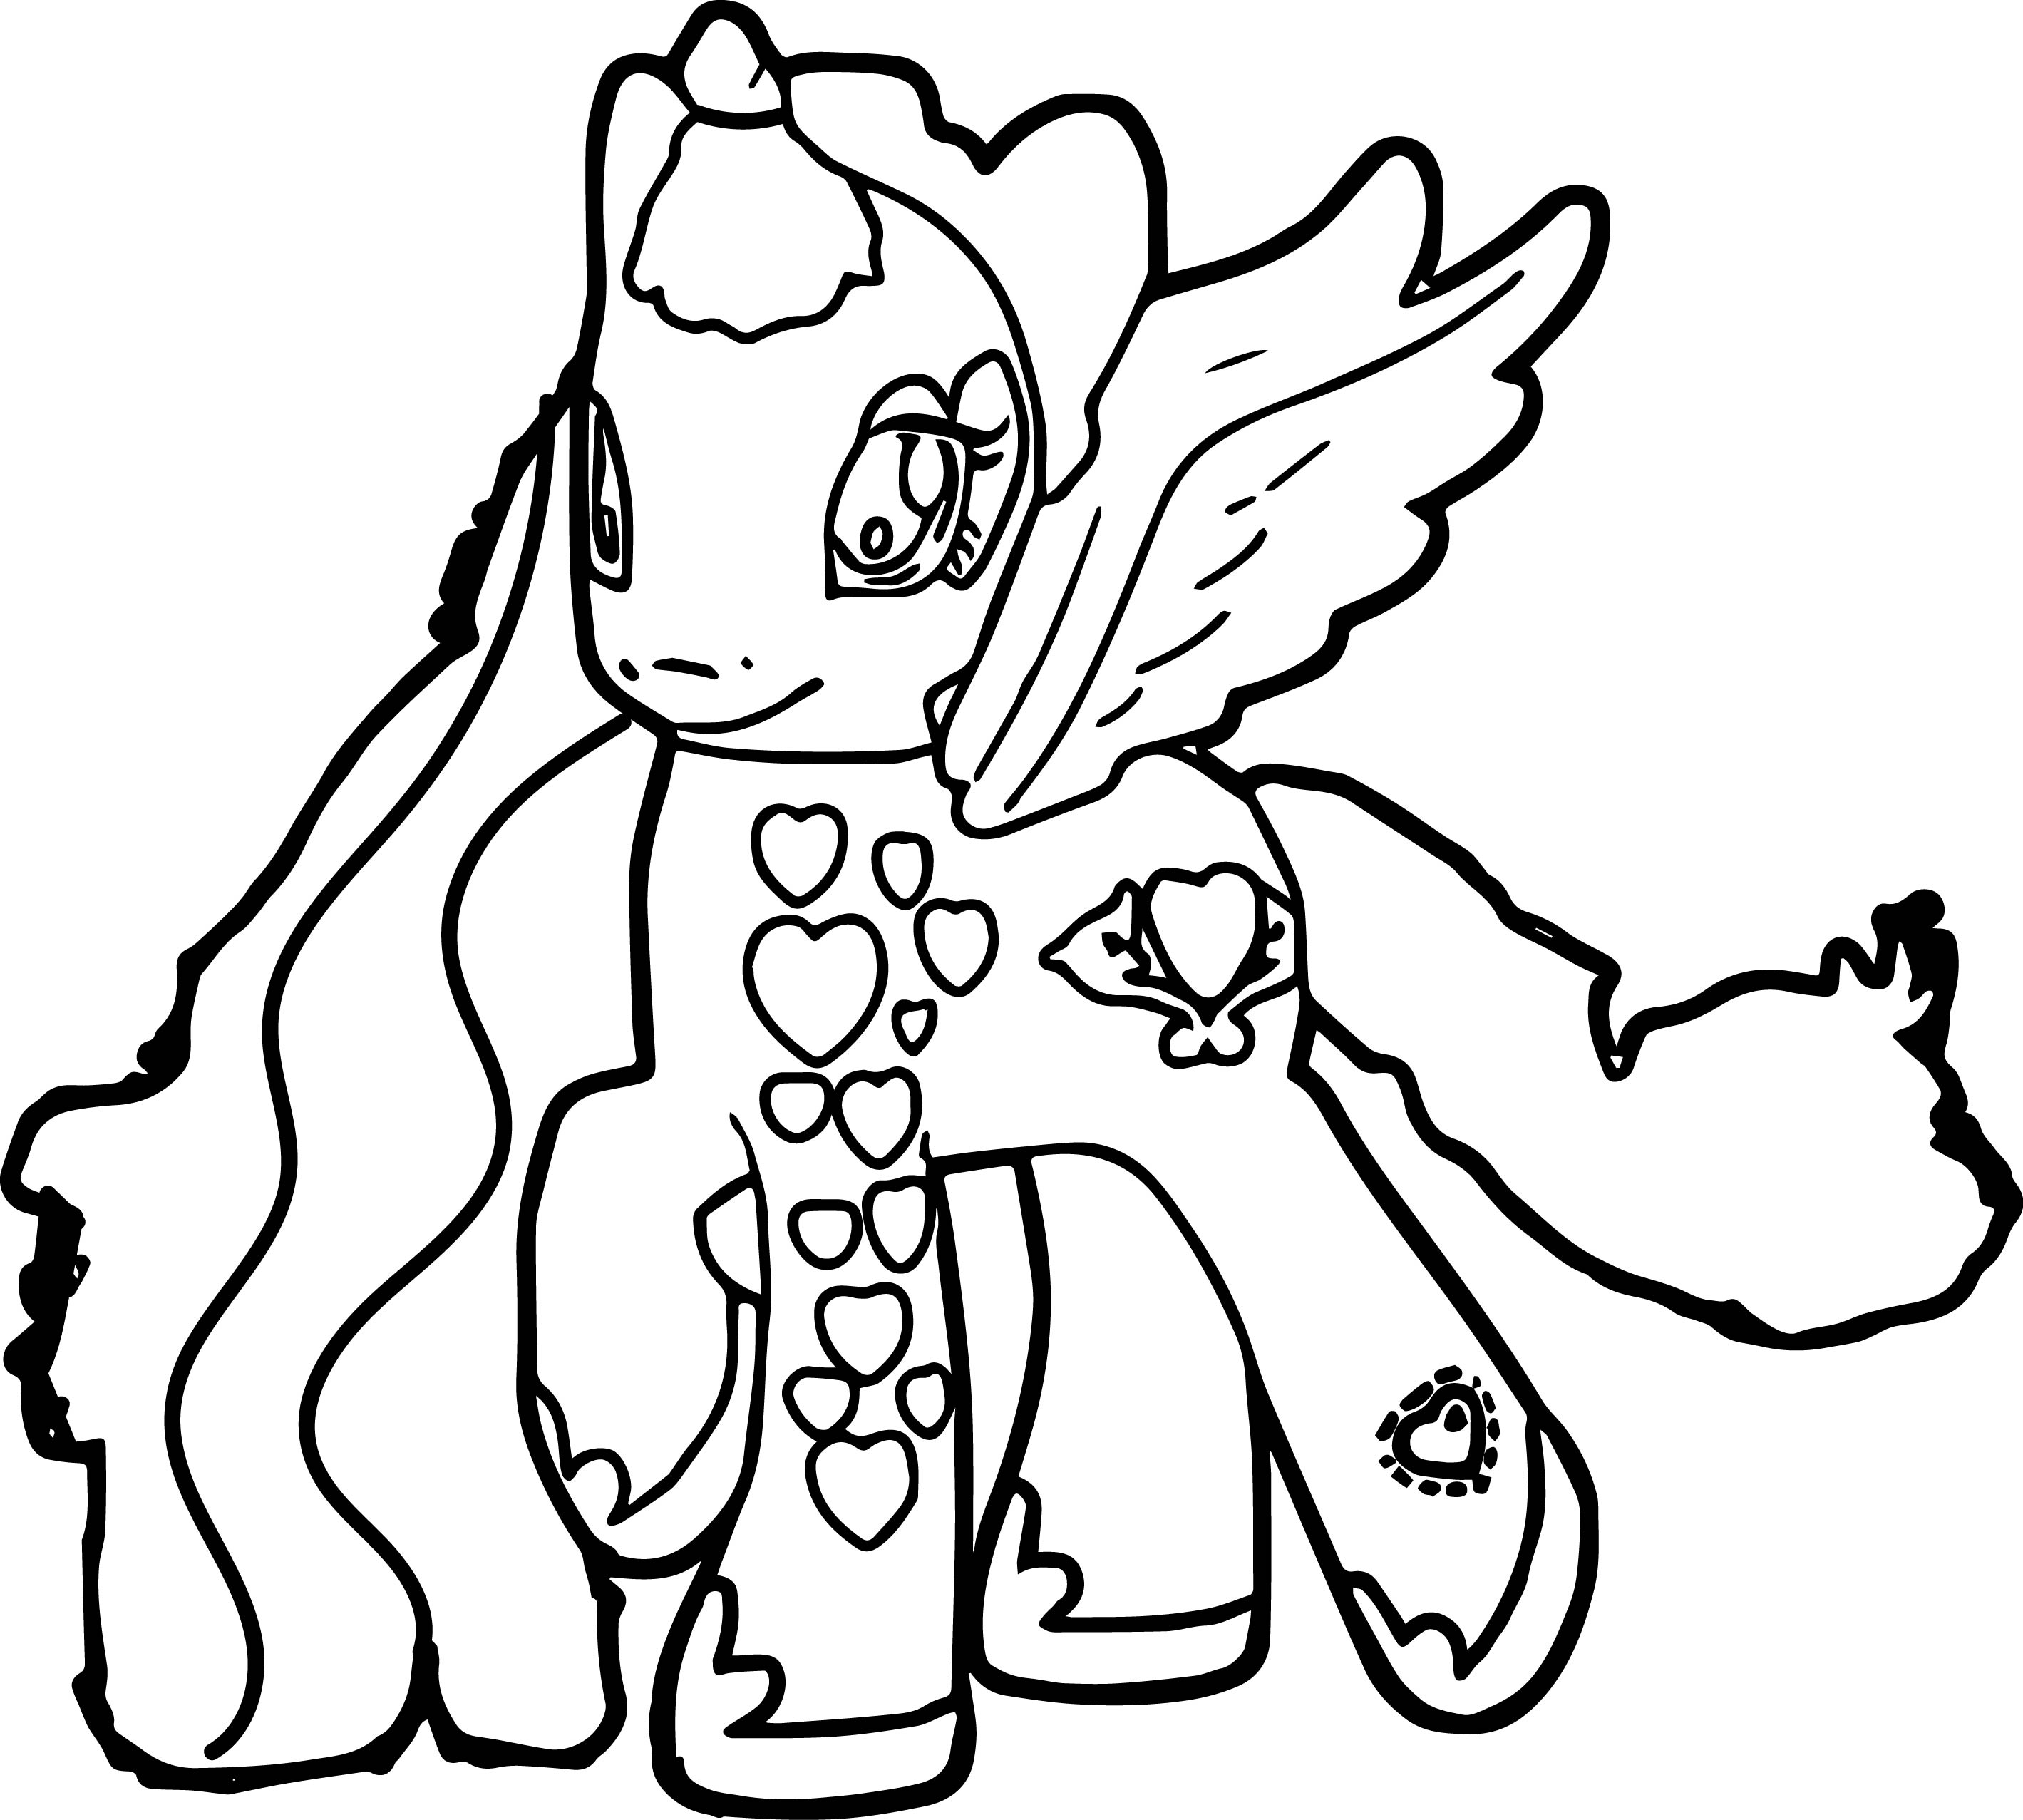 pony express coloring pages free - photo#14